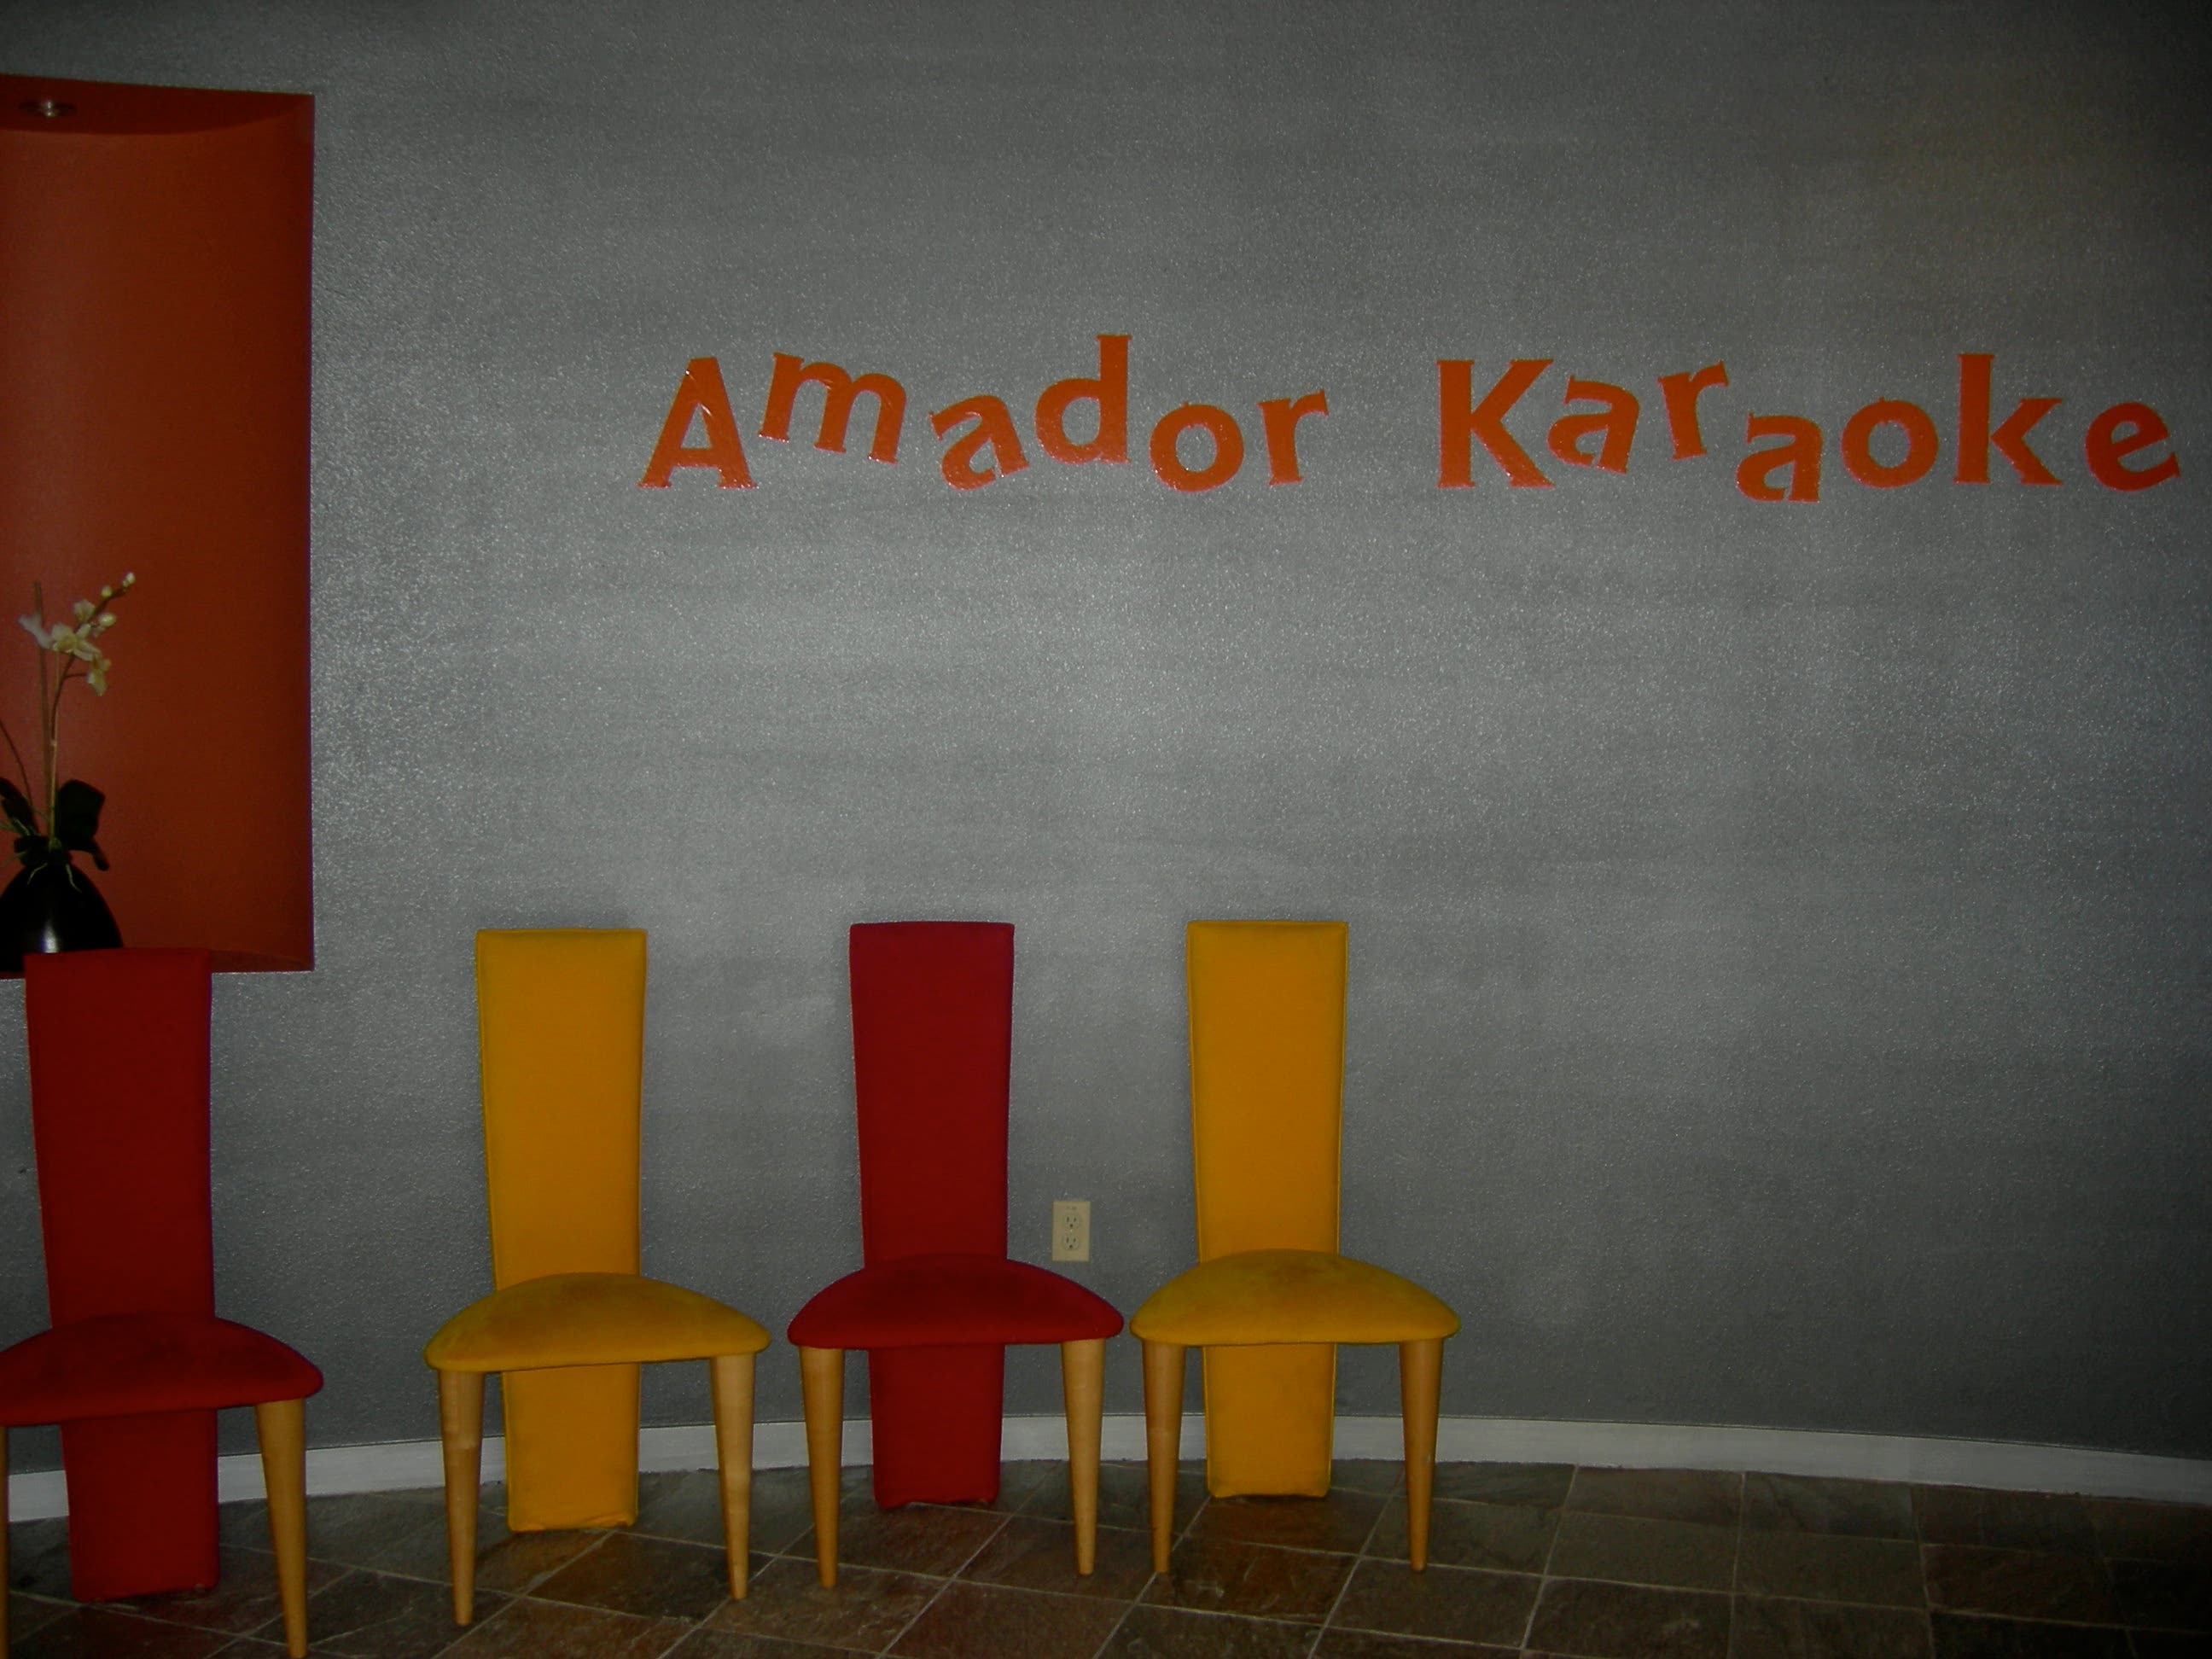 Amador Karaoke: Make Everyone at Your Party Feel Like a Star